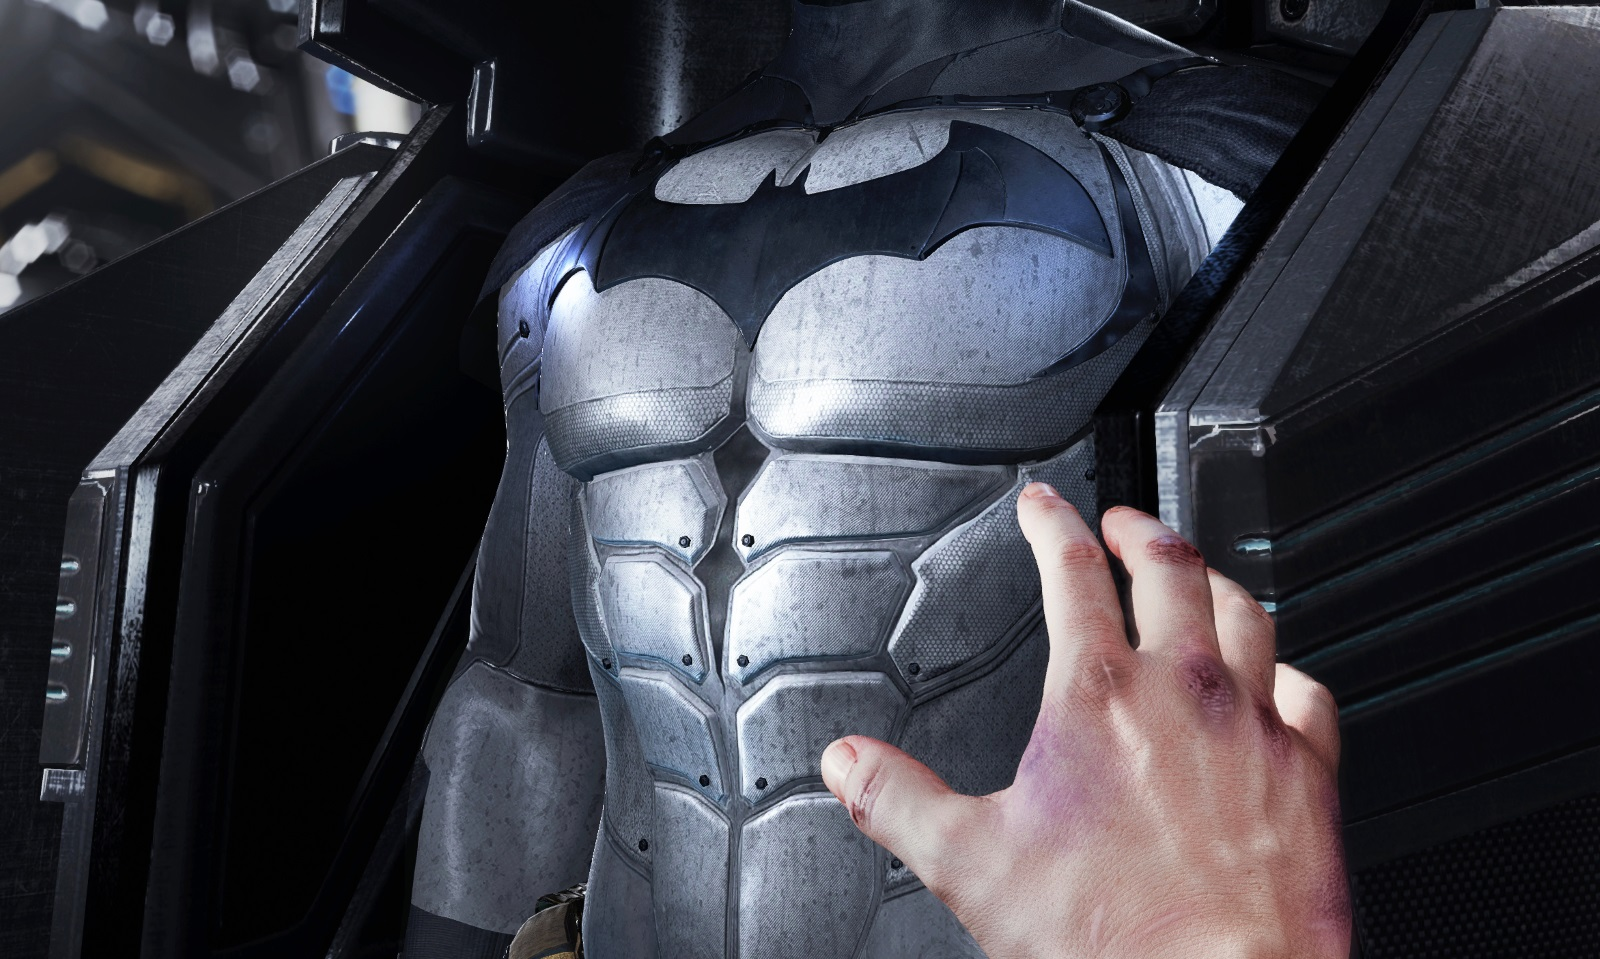 Batman Arkham VR Review A Brave And Bold Thriller That Plays To The Strengths Of VR VG247